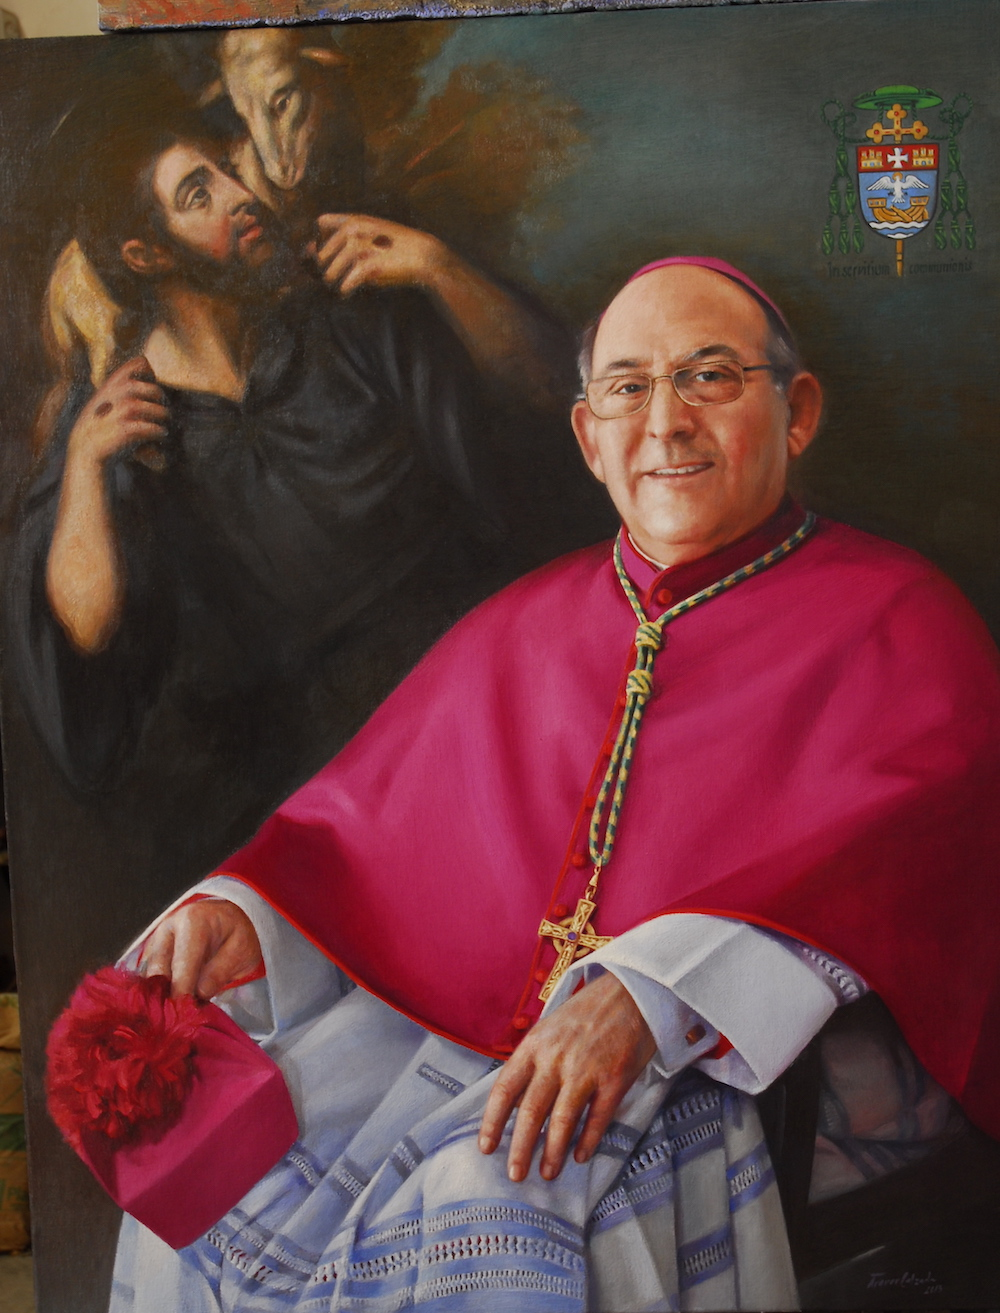 Official portrait of the Bishop Casimiro